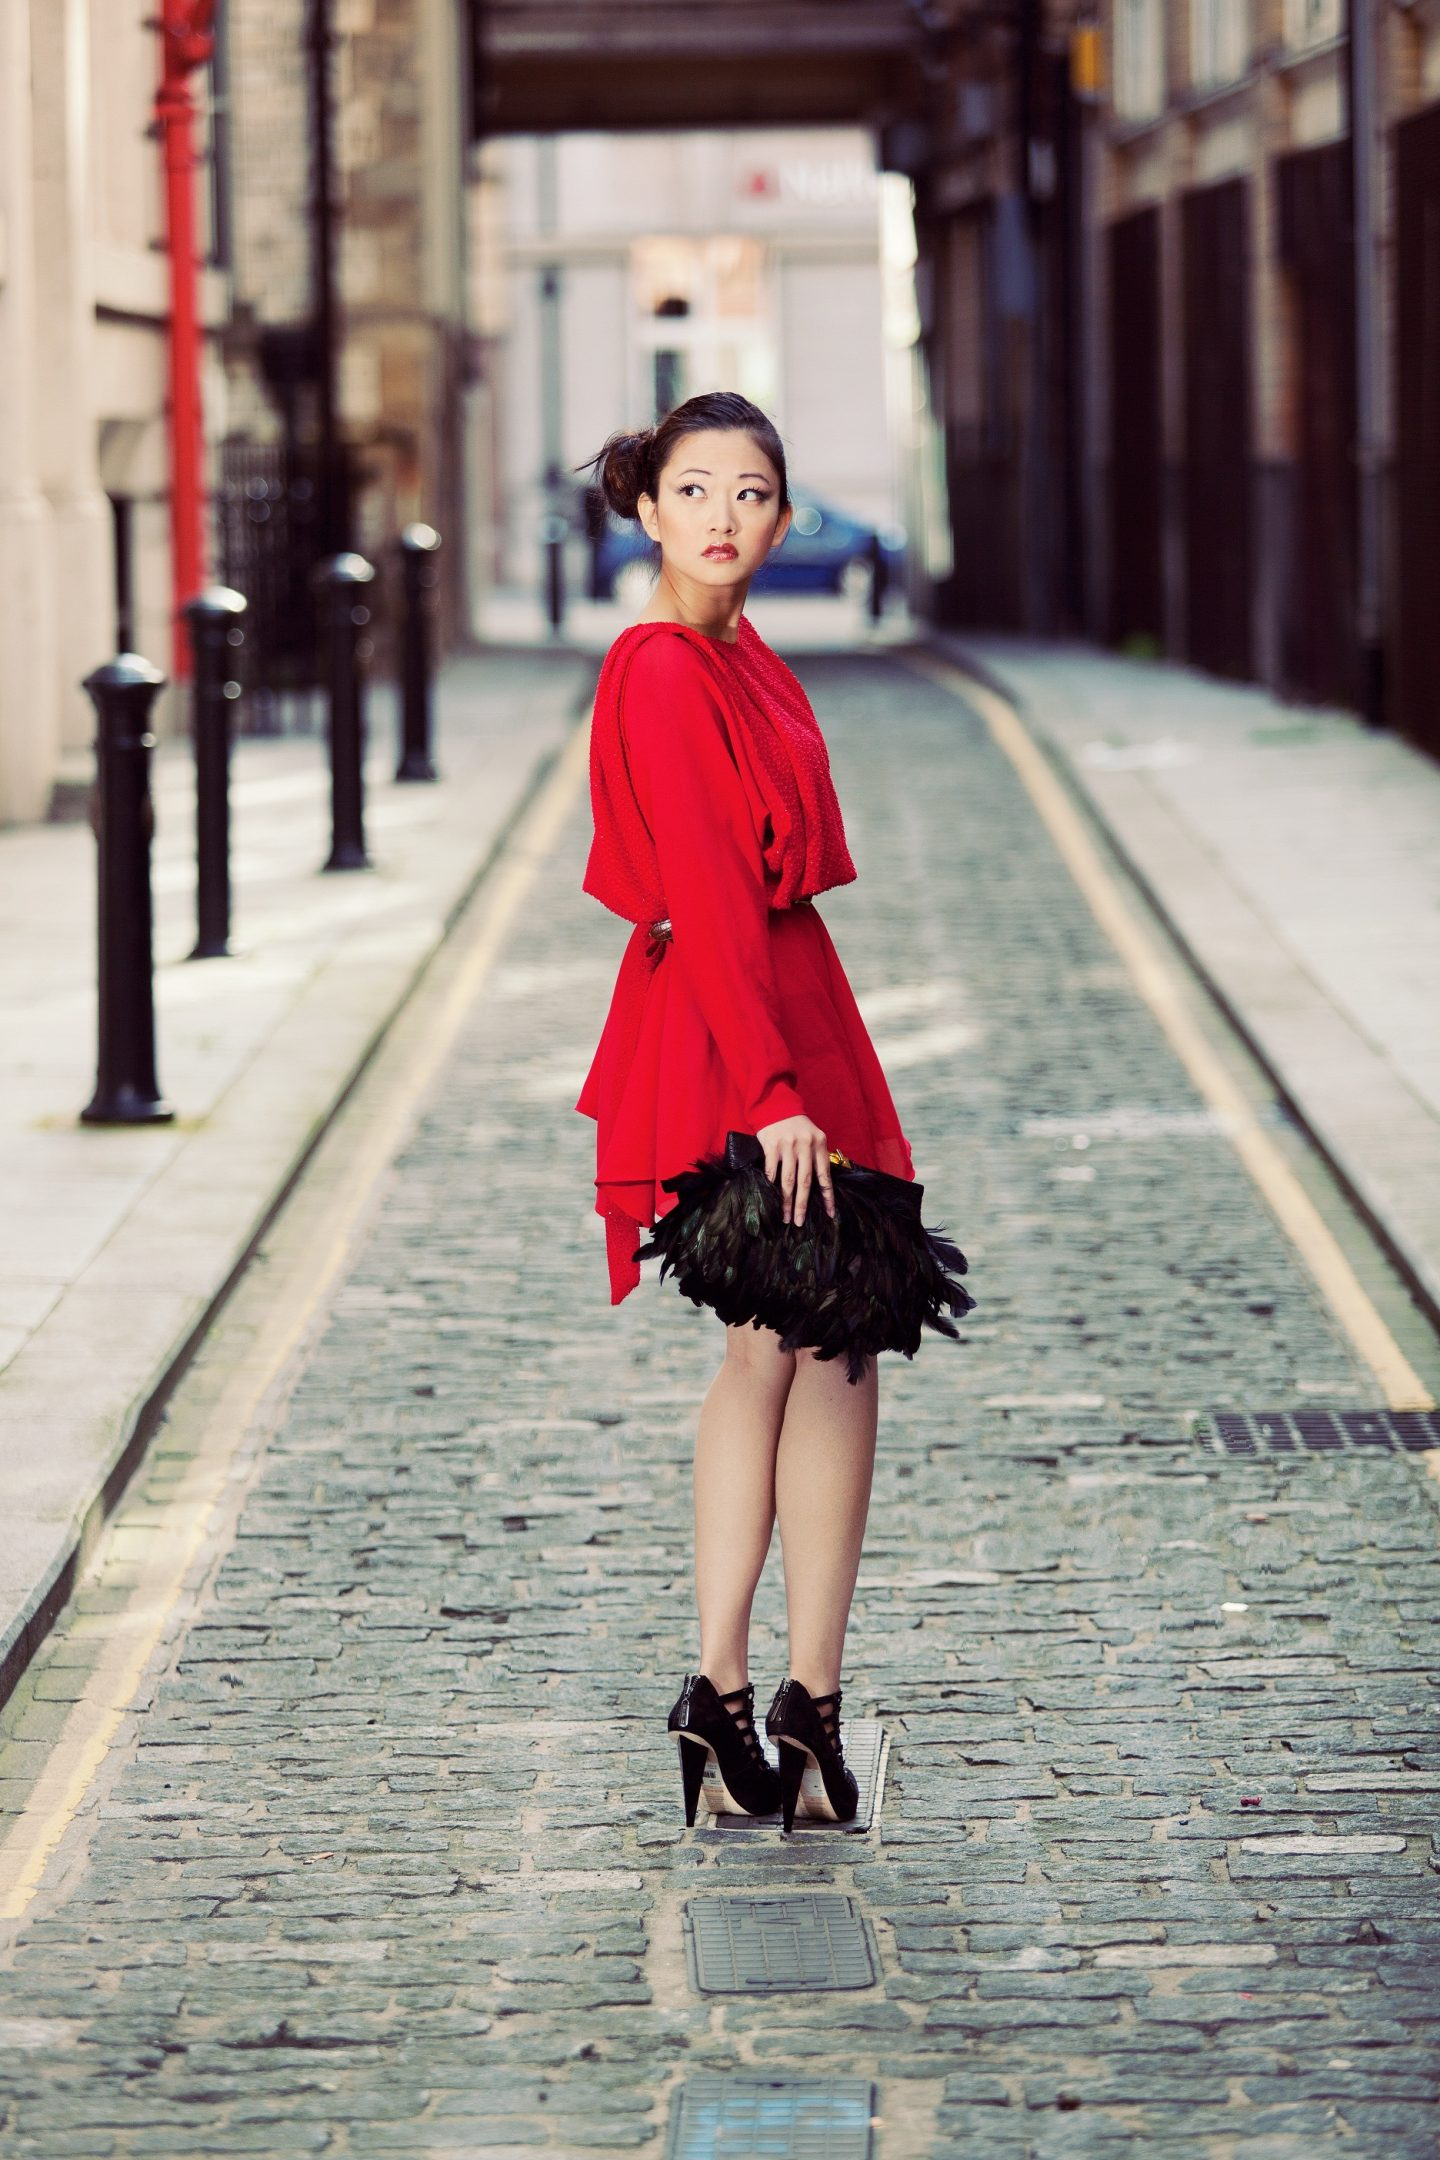 How to improve your fashion photography the wong blog monica wong